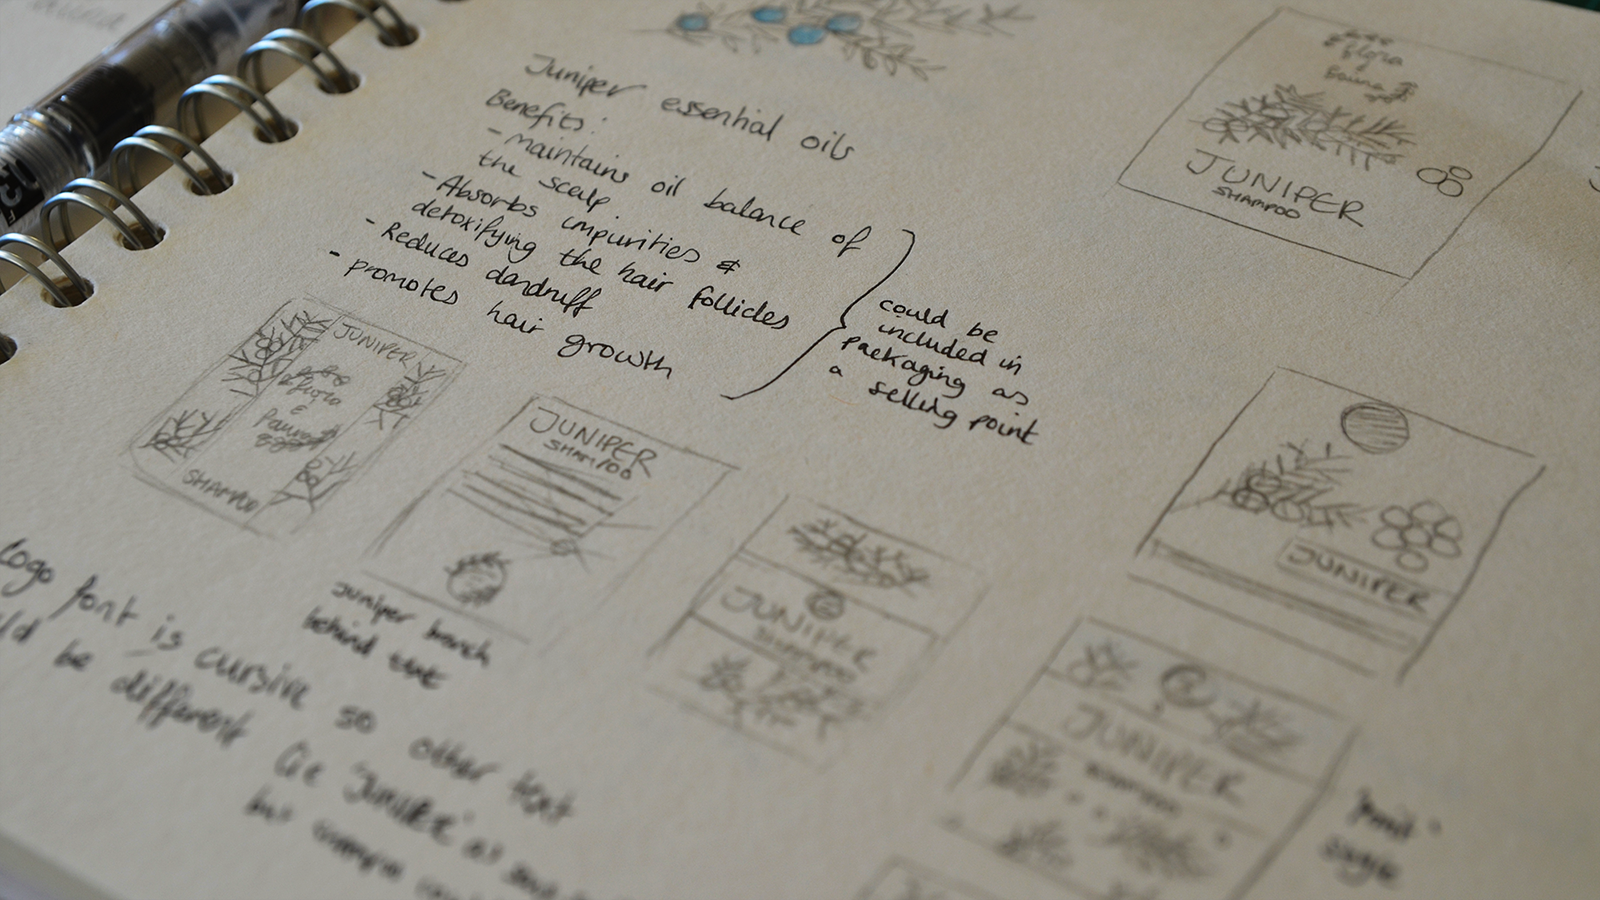 Often when designing, I like to do a lot of thumbnail sketches to get multiple ideas down quickly. From there I choose what to take to a digital format